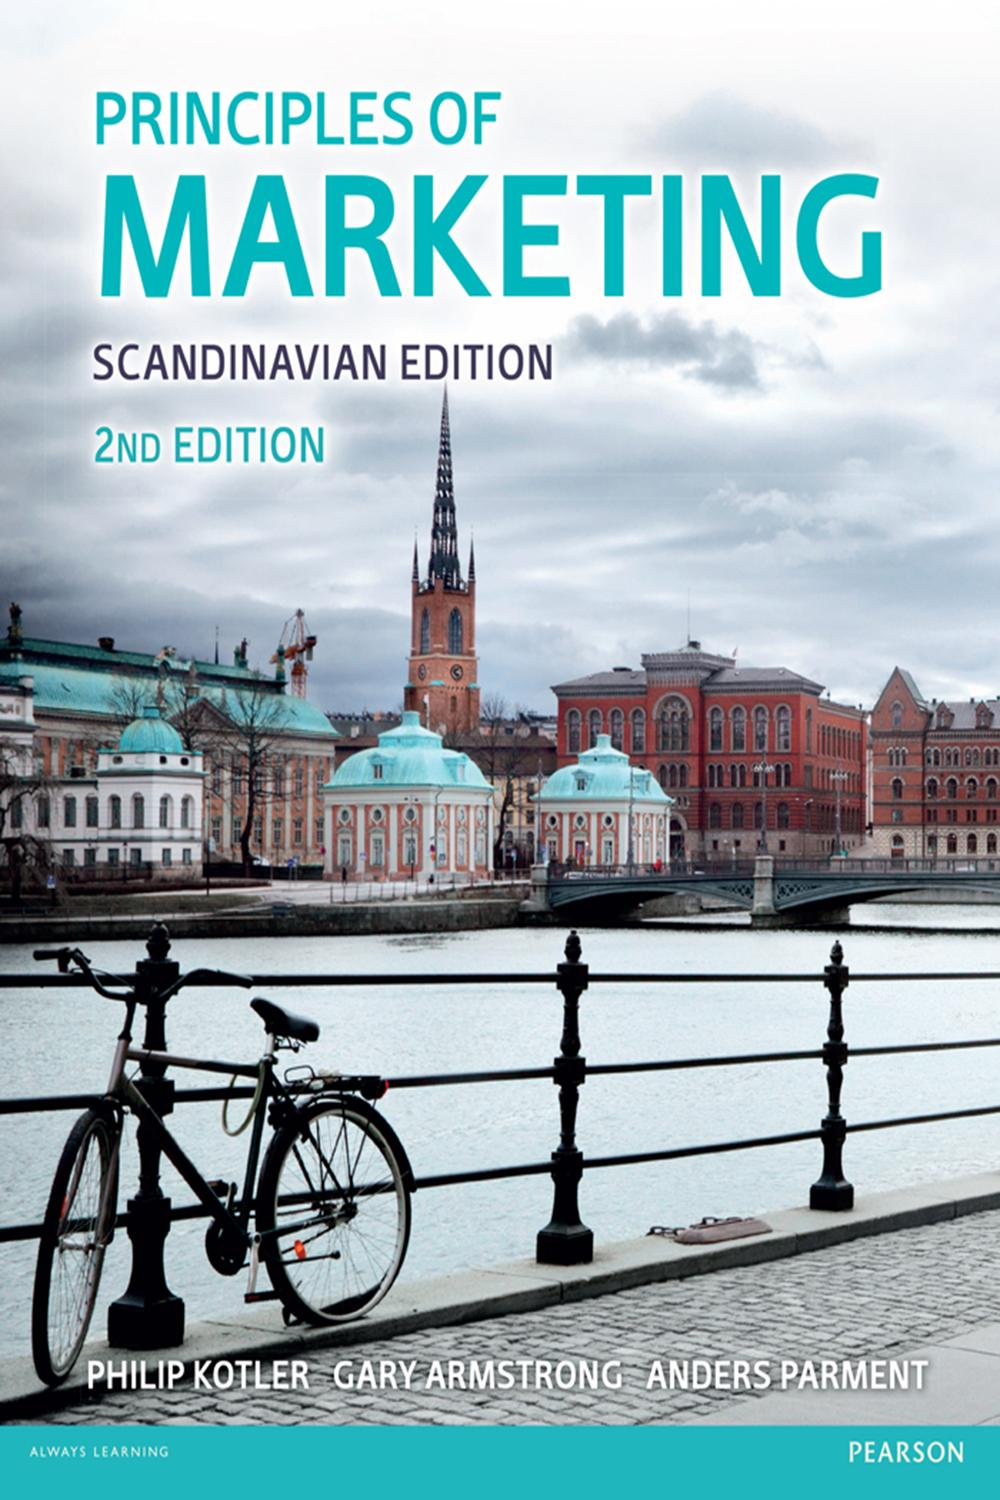 Pdf Principles Of Marketing Scandinavian Edition By Anders Parment Philip Kotler Gary Armstrong Perlego